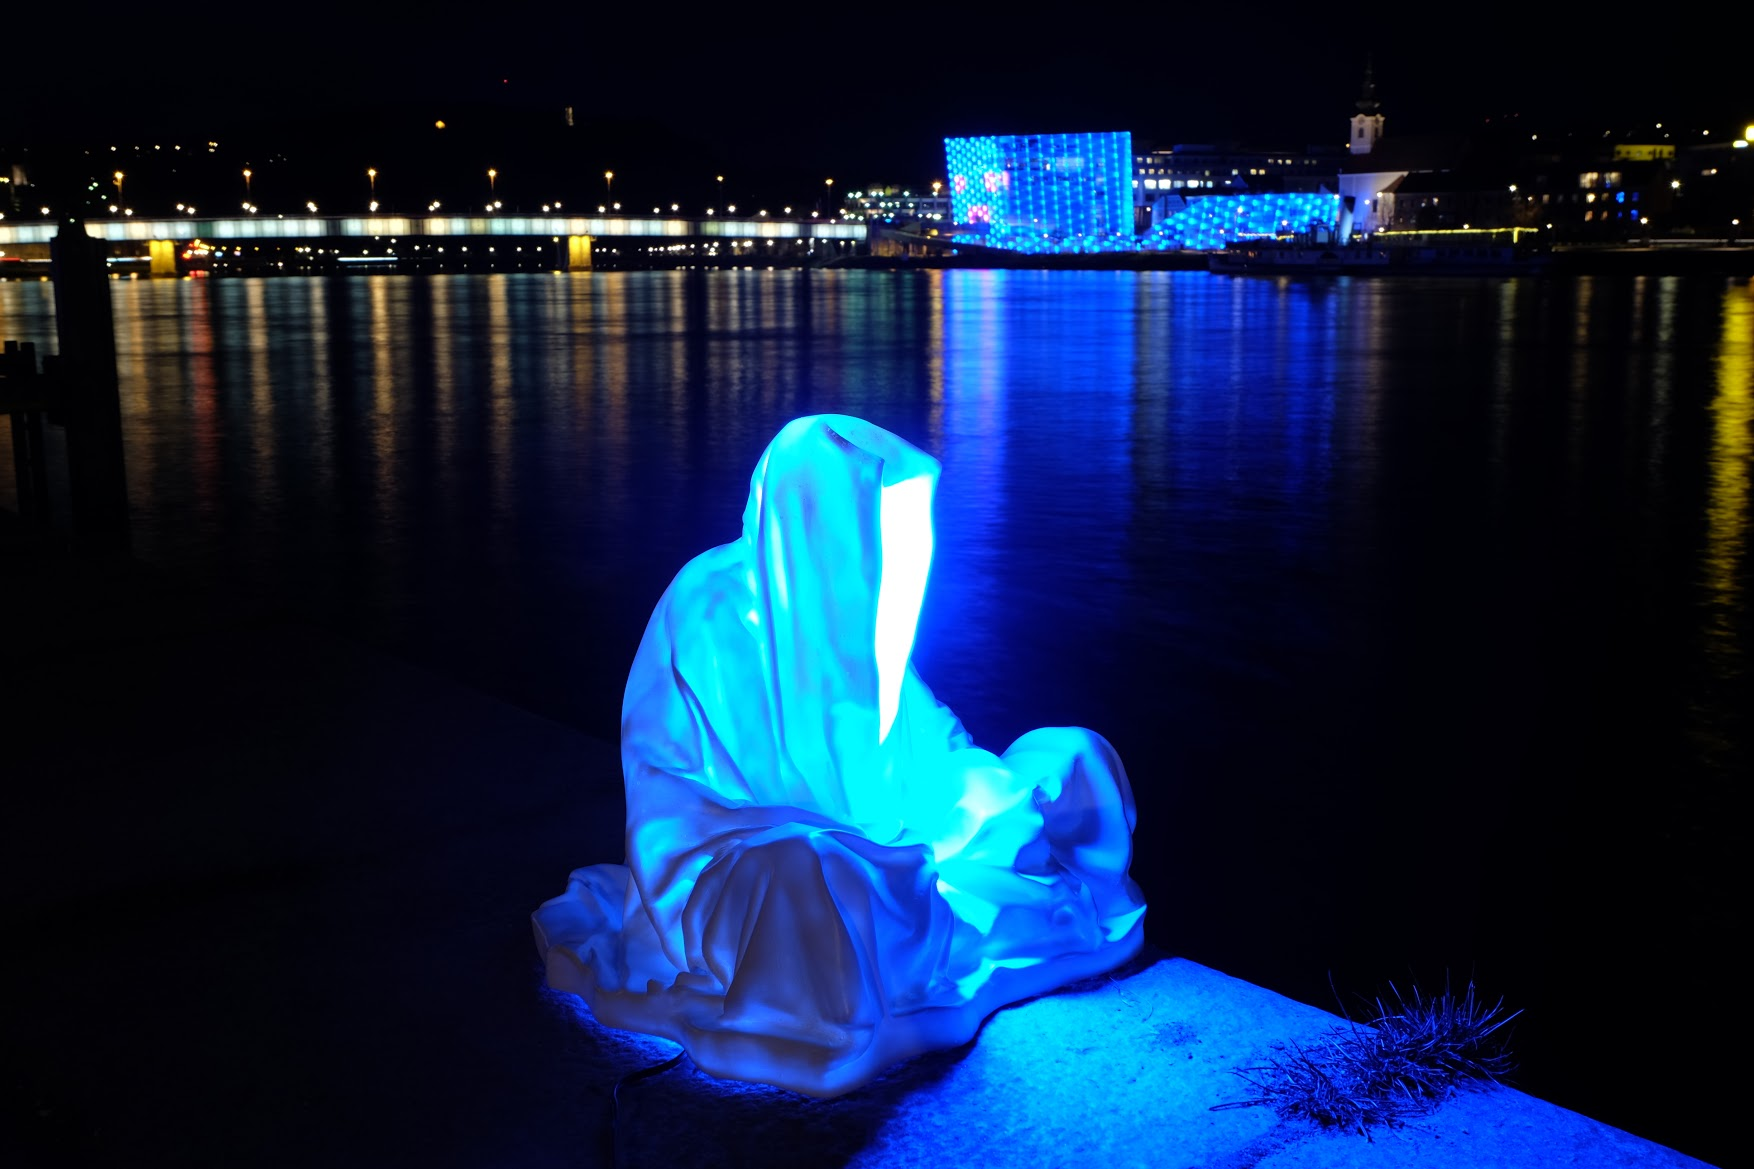 guardians-of-time-manfred-kielnhofer-linz-light-art-contemporary-art-sculpture-statue-modern-design-lamp-light-lumina-1792.jpg